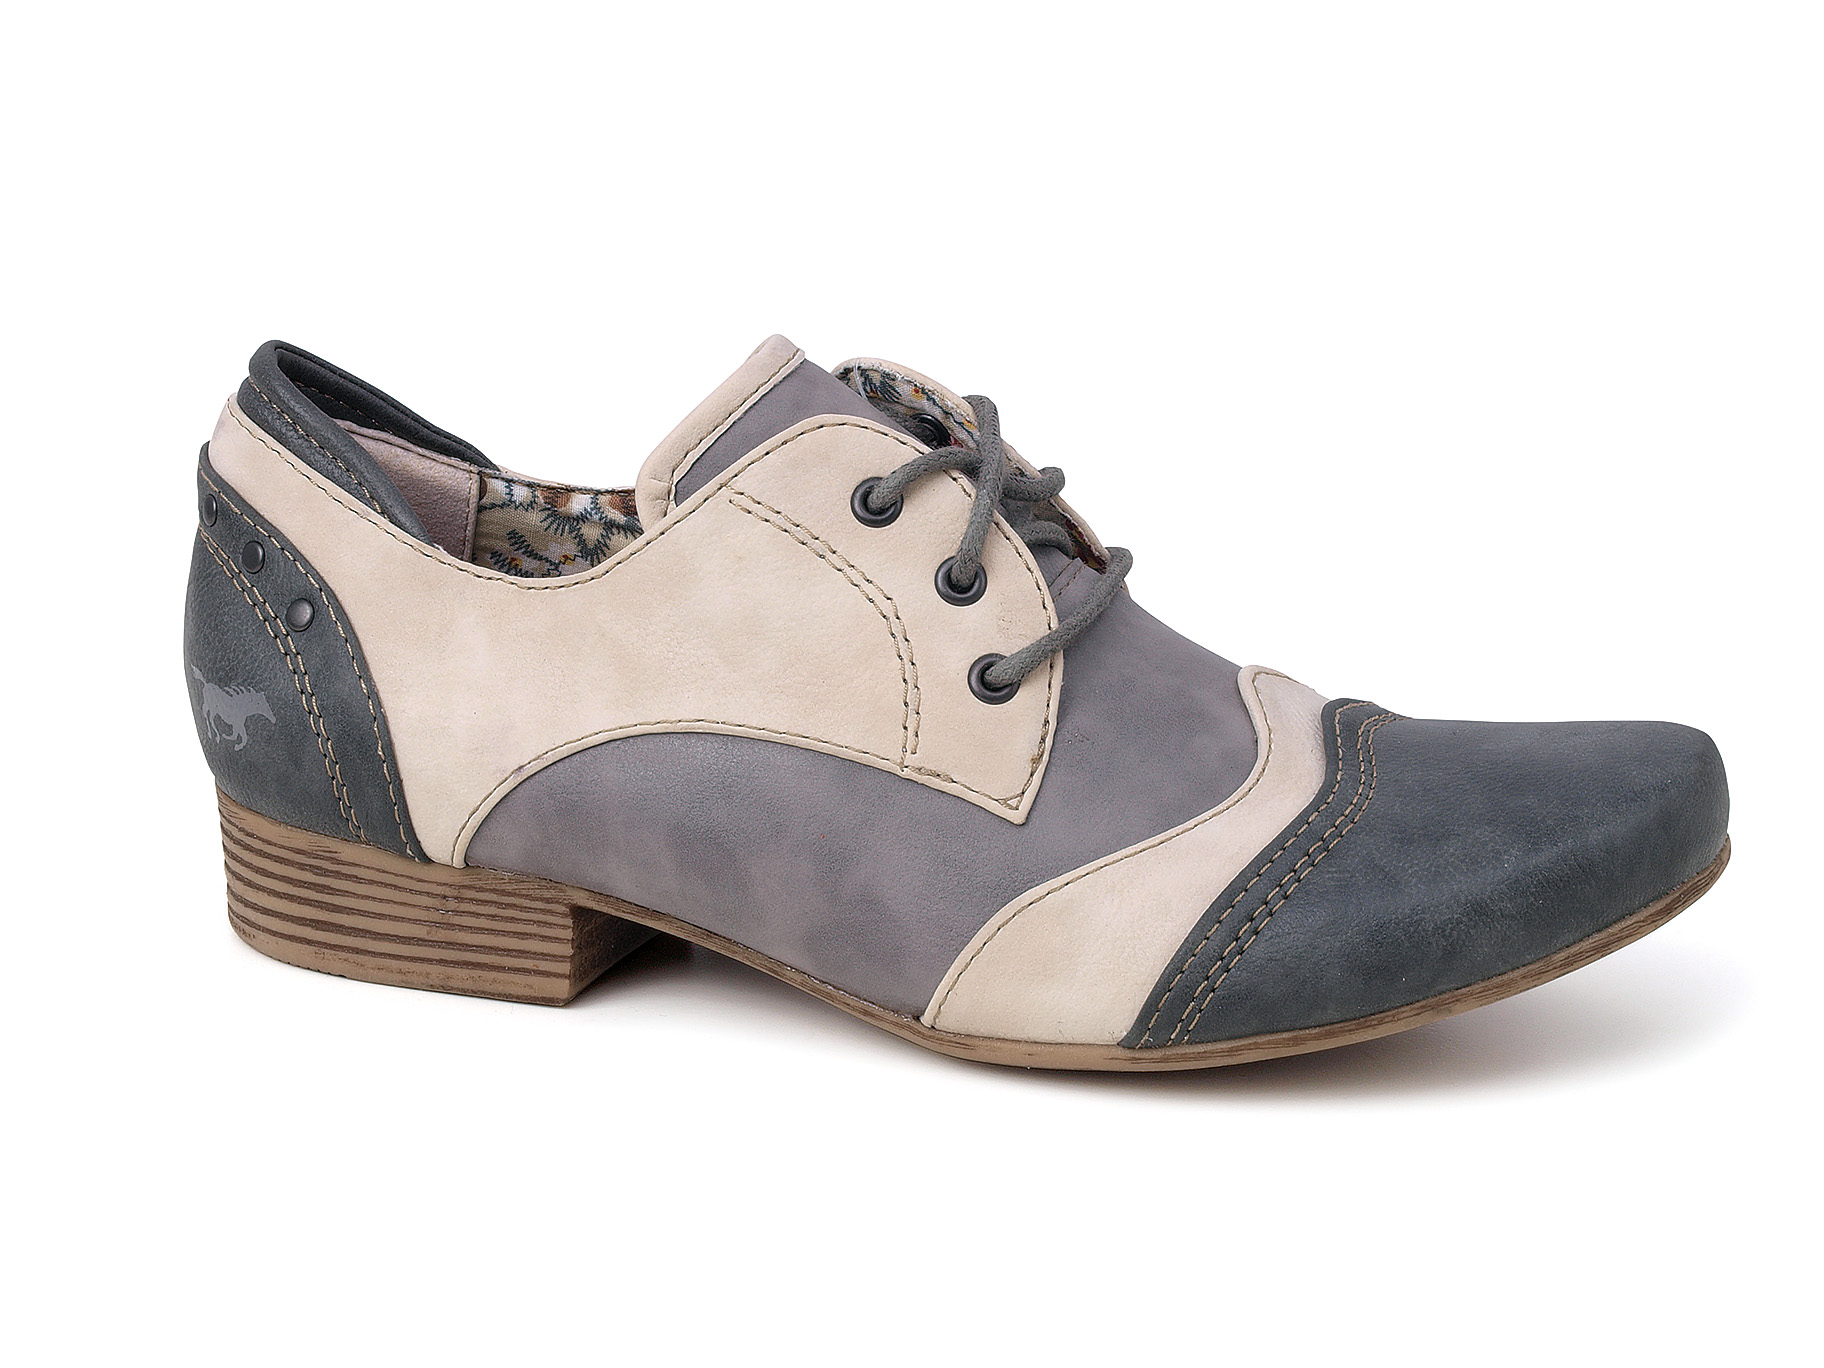 8c3635b067a87 Buty damskie MUSTANG shoes 36C-064 mustang shoes